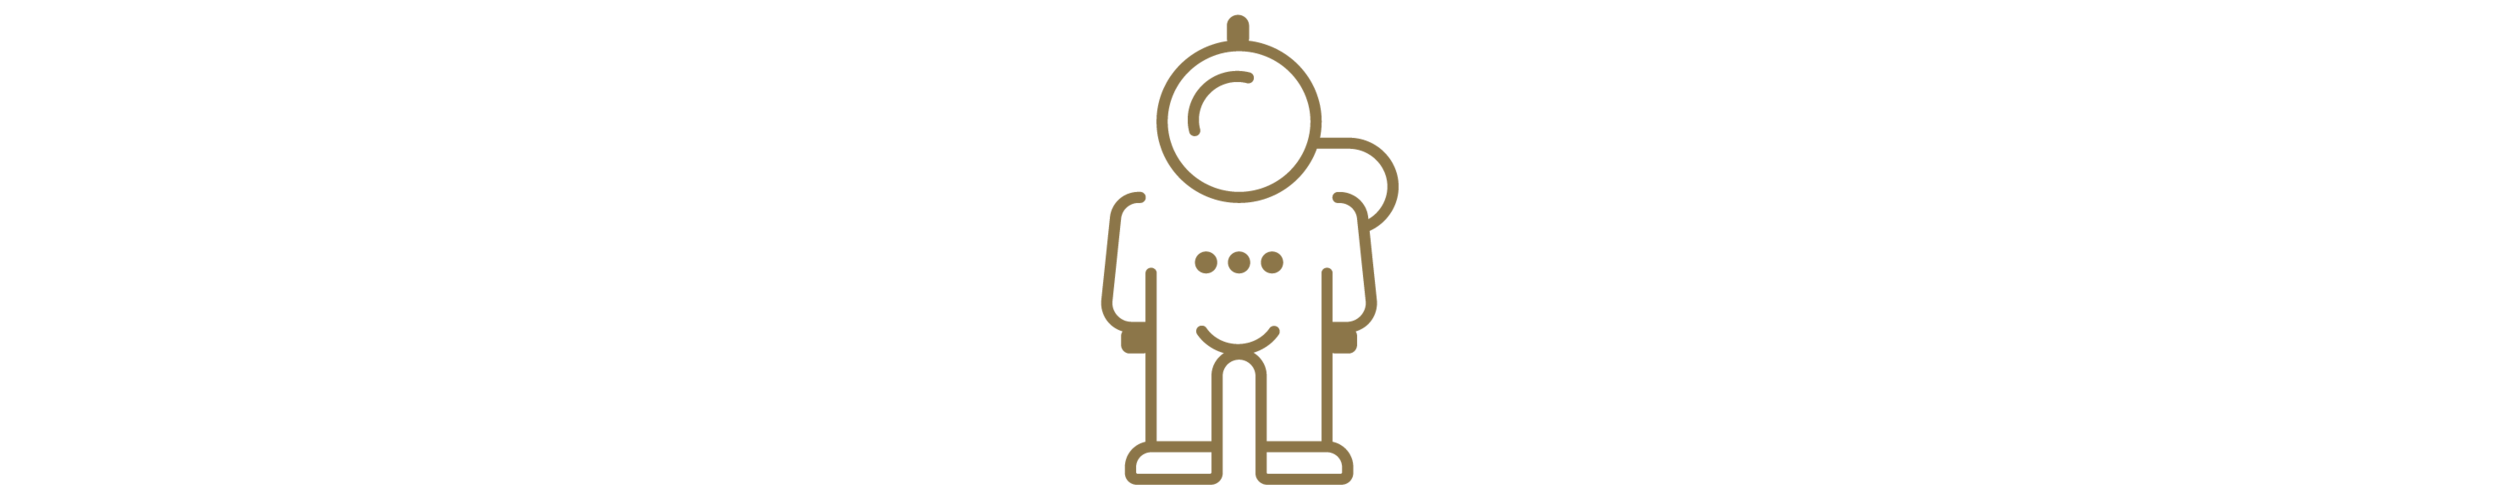 Gold_Icons_large.png